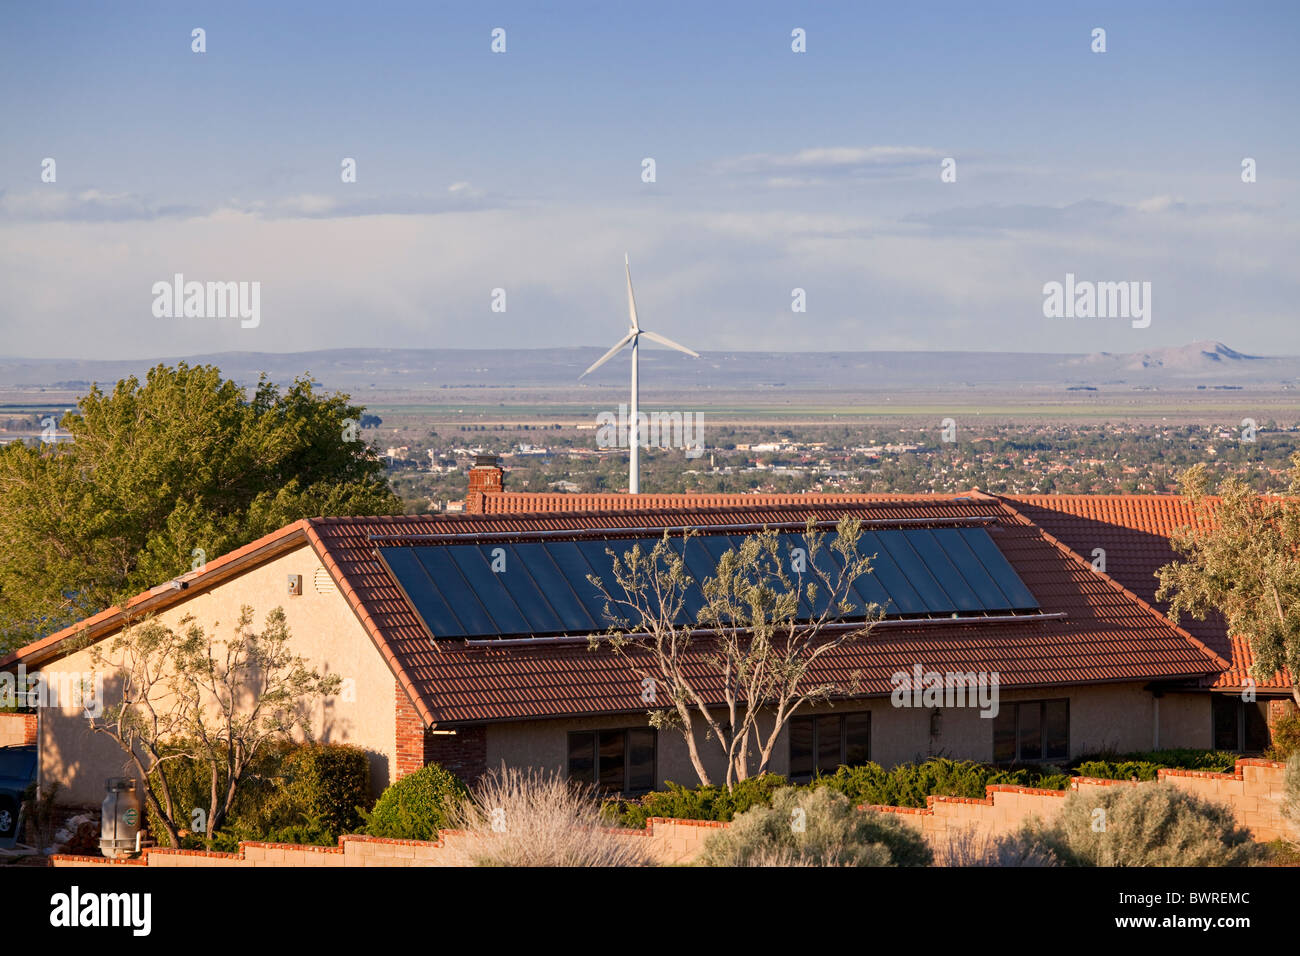 Solar panel on roof of home with wind turbine in background, Housing developments in Palmdale, Los Angeles County, - Stock Image